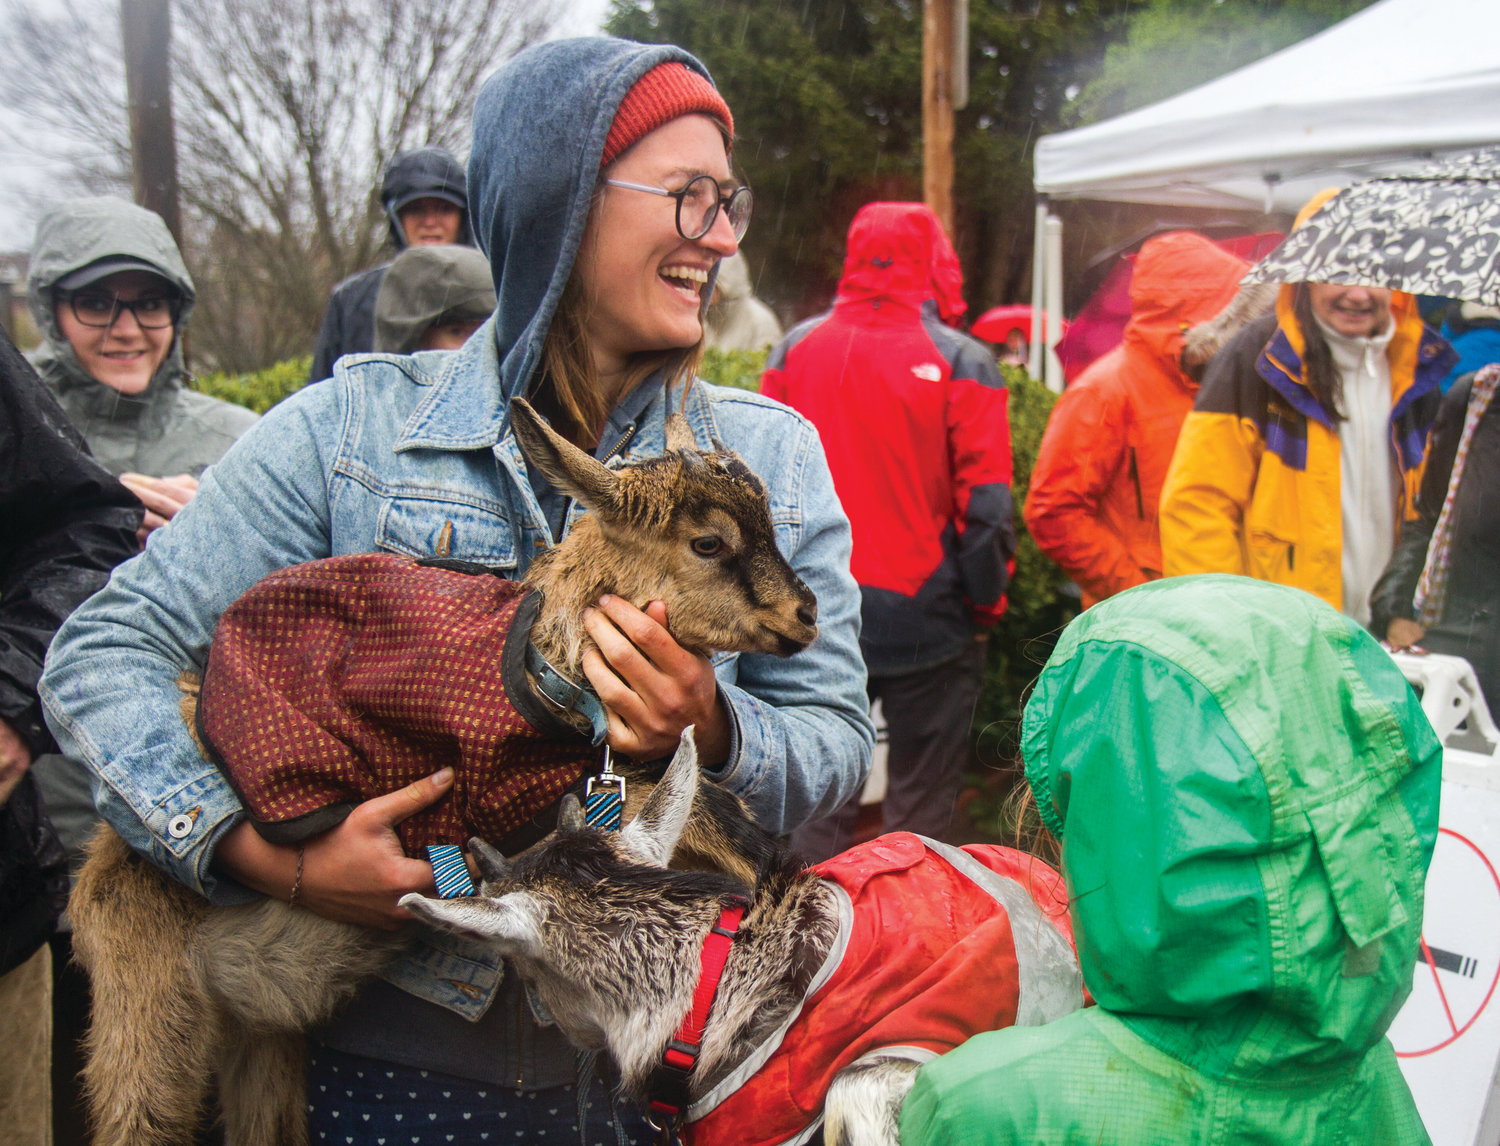 Lydia Vadopalas holds Mutsu, a baby goat from Mystery Bay Farm, who participated in the goat parade at the opening of the Port Townsend Farmers Market. See page A18 for more.